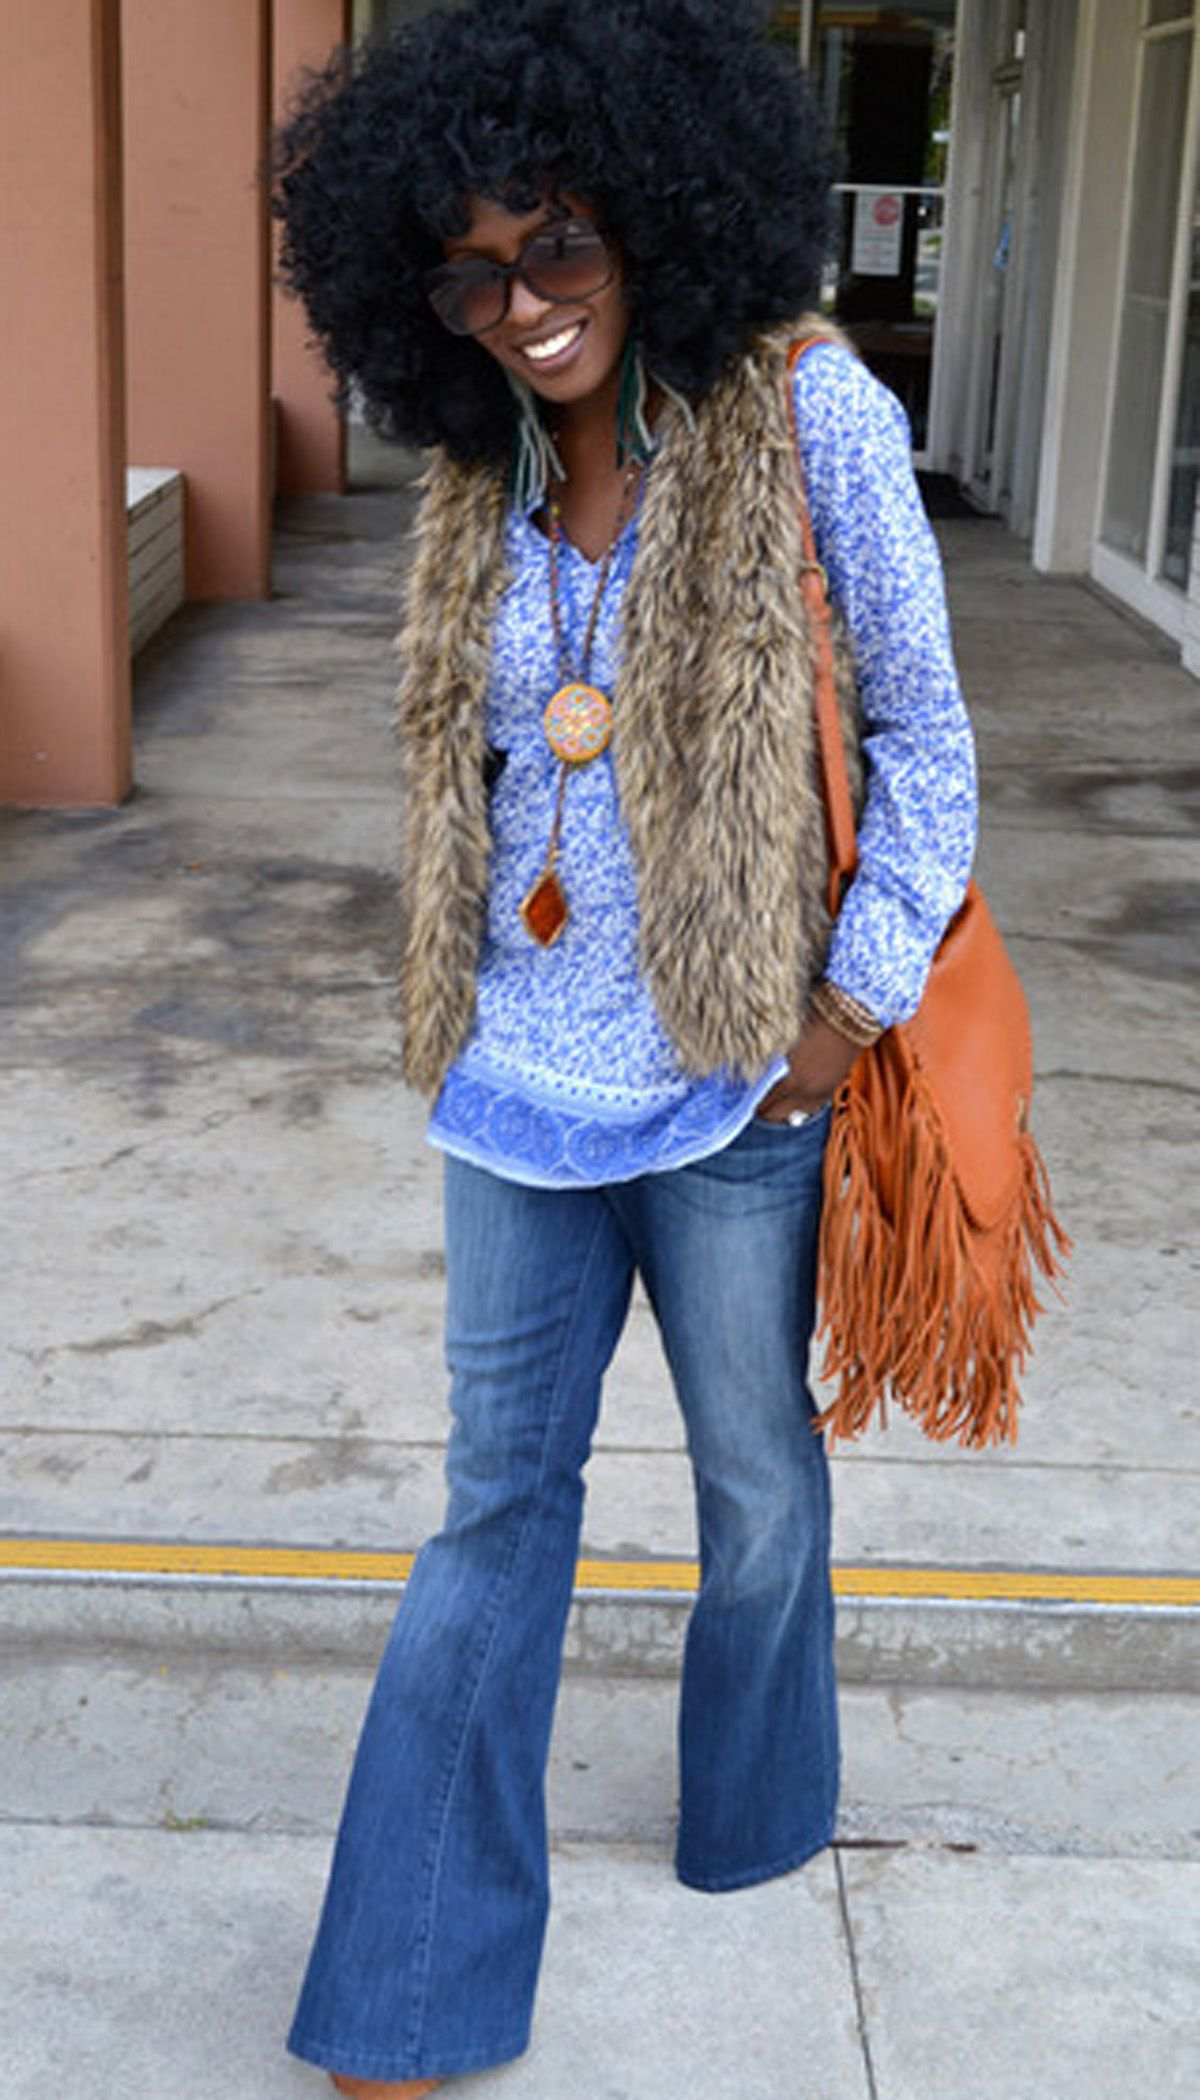 Groovy 1000 Images About Afrocentric On Pinterest Hairstyles For Men Maxibearus